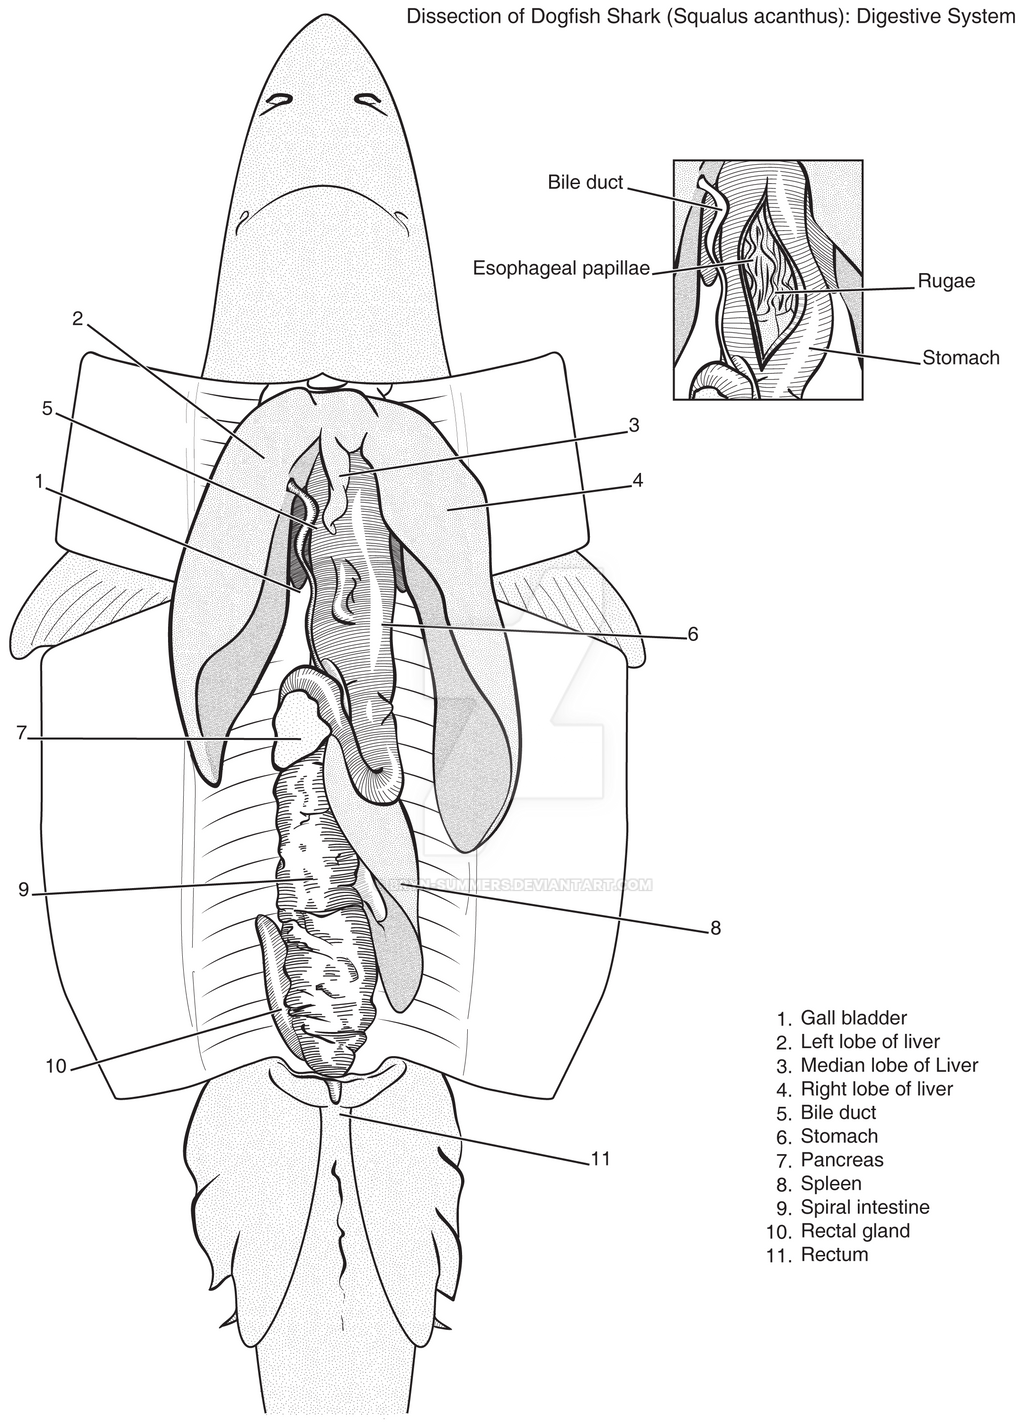 Dogfish Shark Internal Anatomy Diagram Digestive - Block And ...